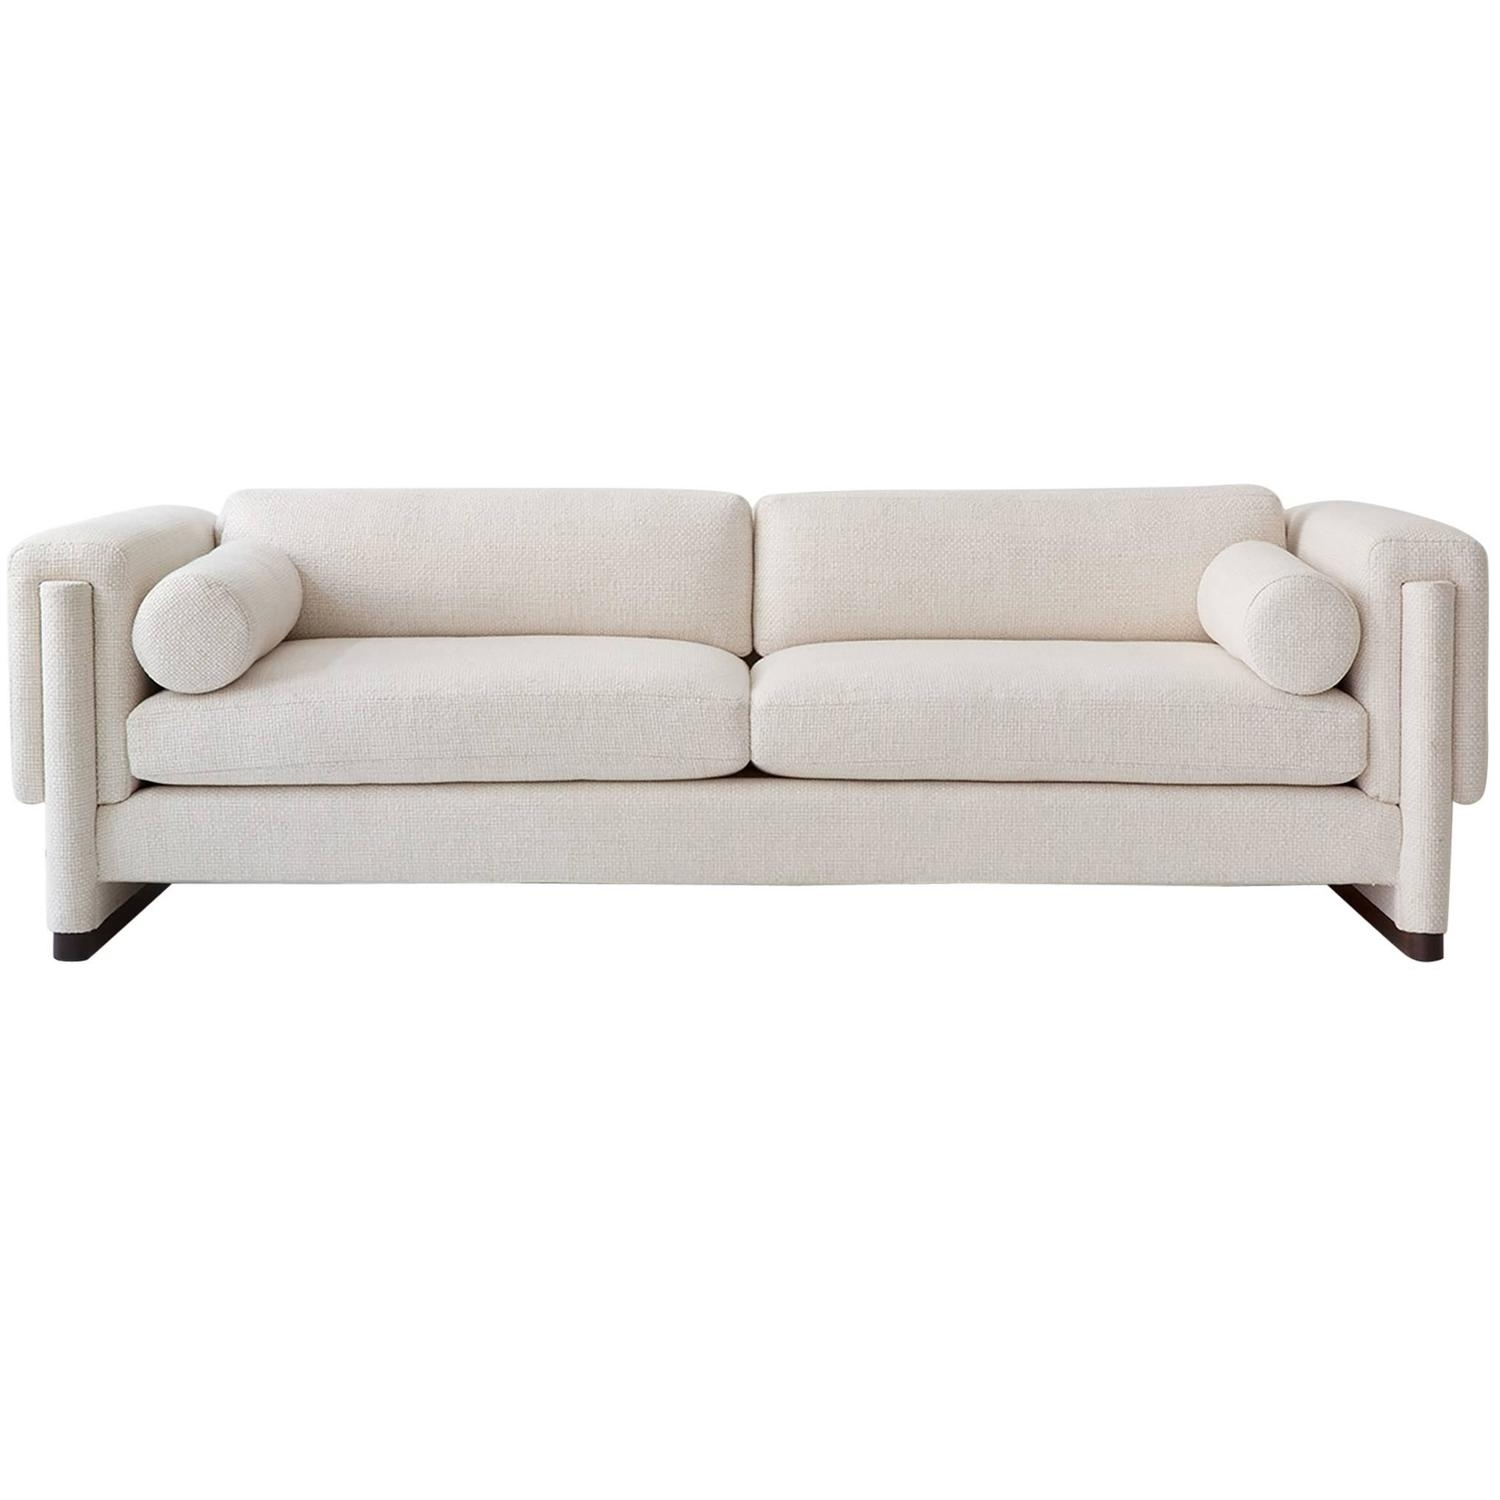 Art Deco Sofas – 131 For Sale At 1Stdibs In Art Deco Sofas (View 6 of 10)